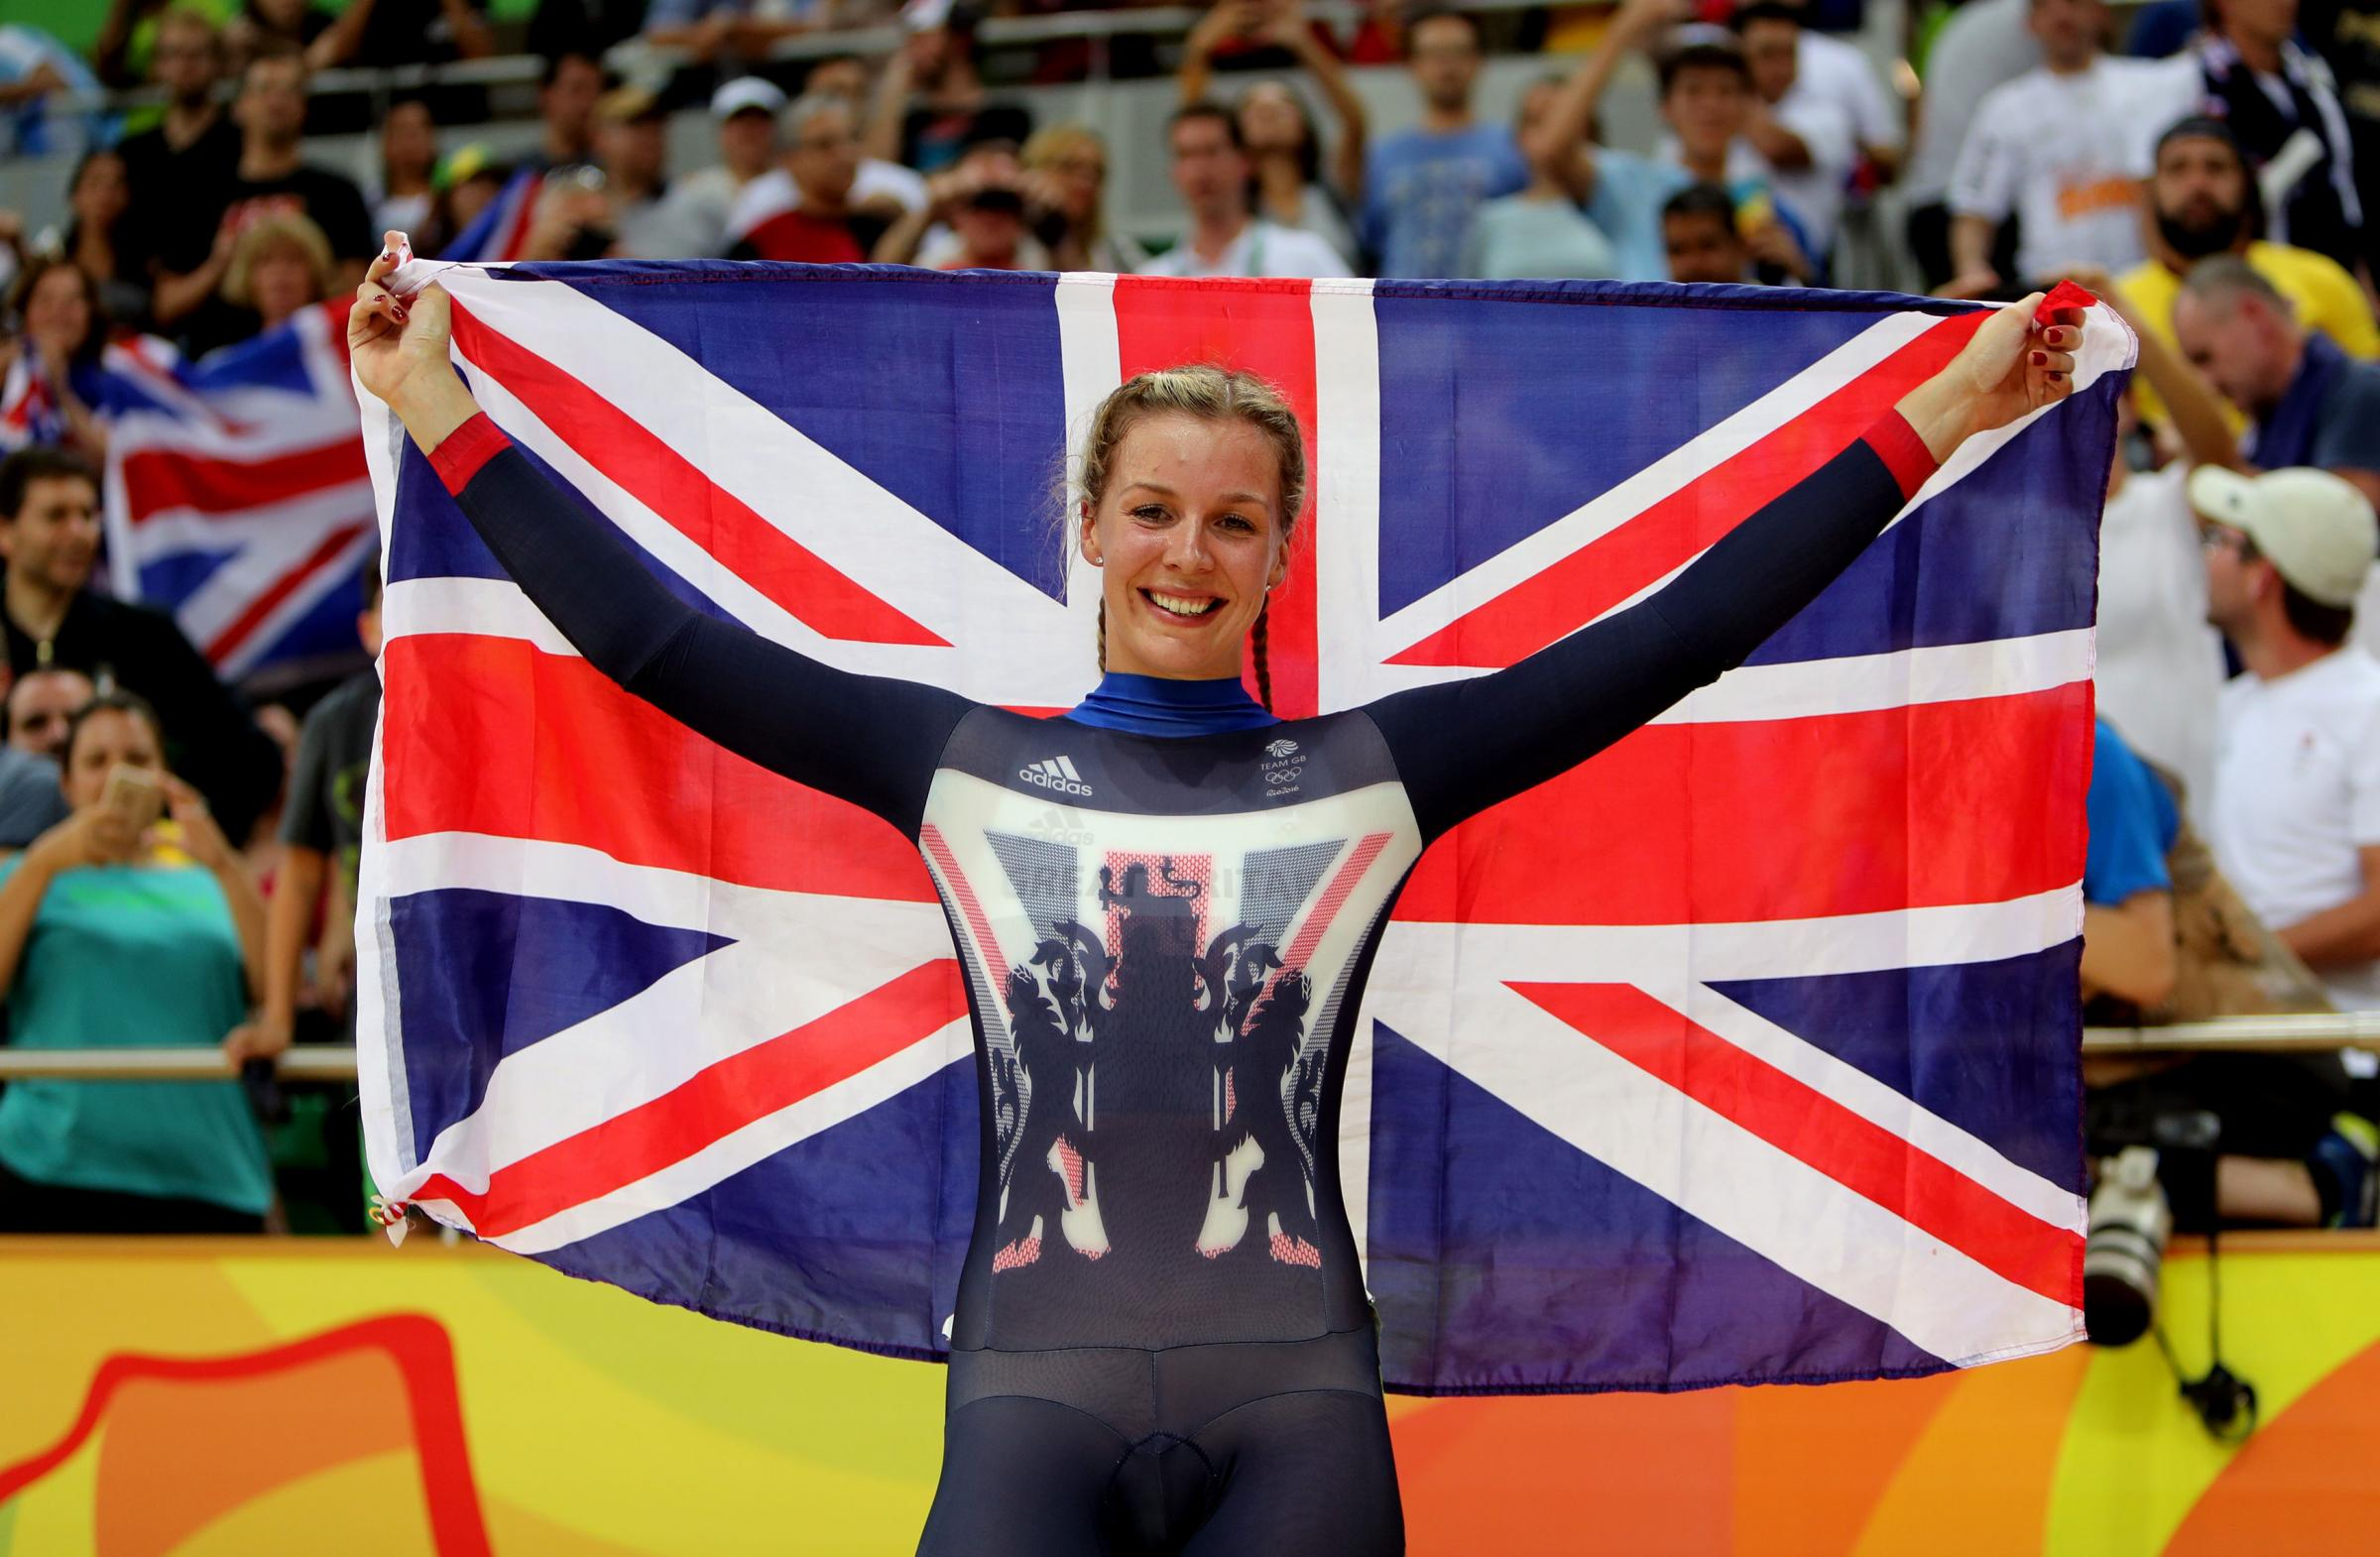 SUCCESS: Abergavenny's Becky James celebrates following her silver medal in the women's keirin final at the Rio 2016 Olympics